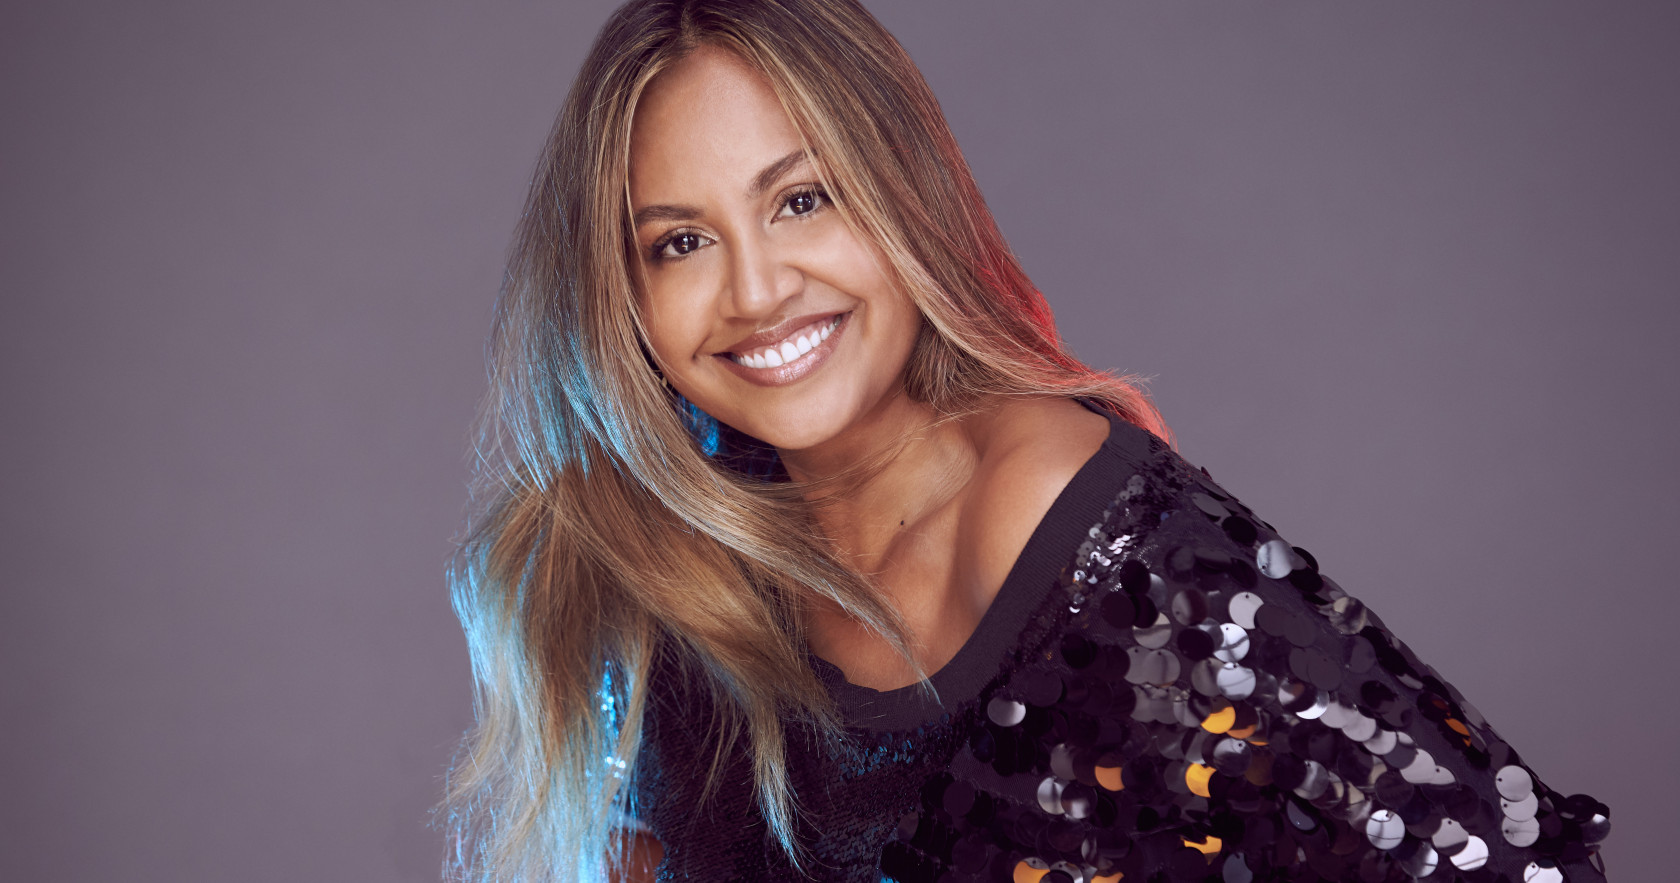 Jessica Mauboy will represent Australia in the 2018 Eurovision Song Contest